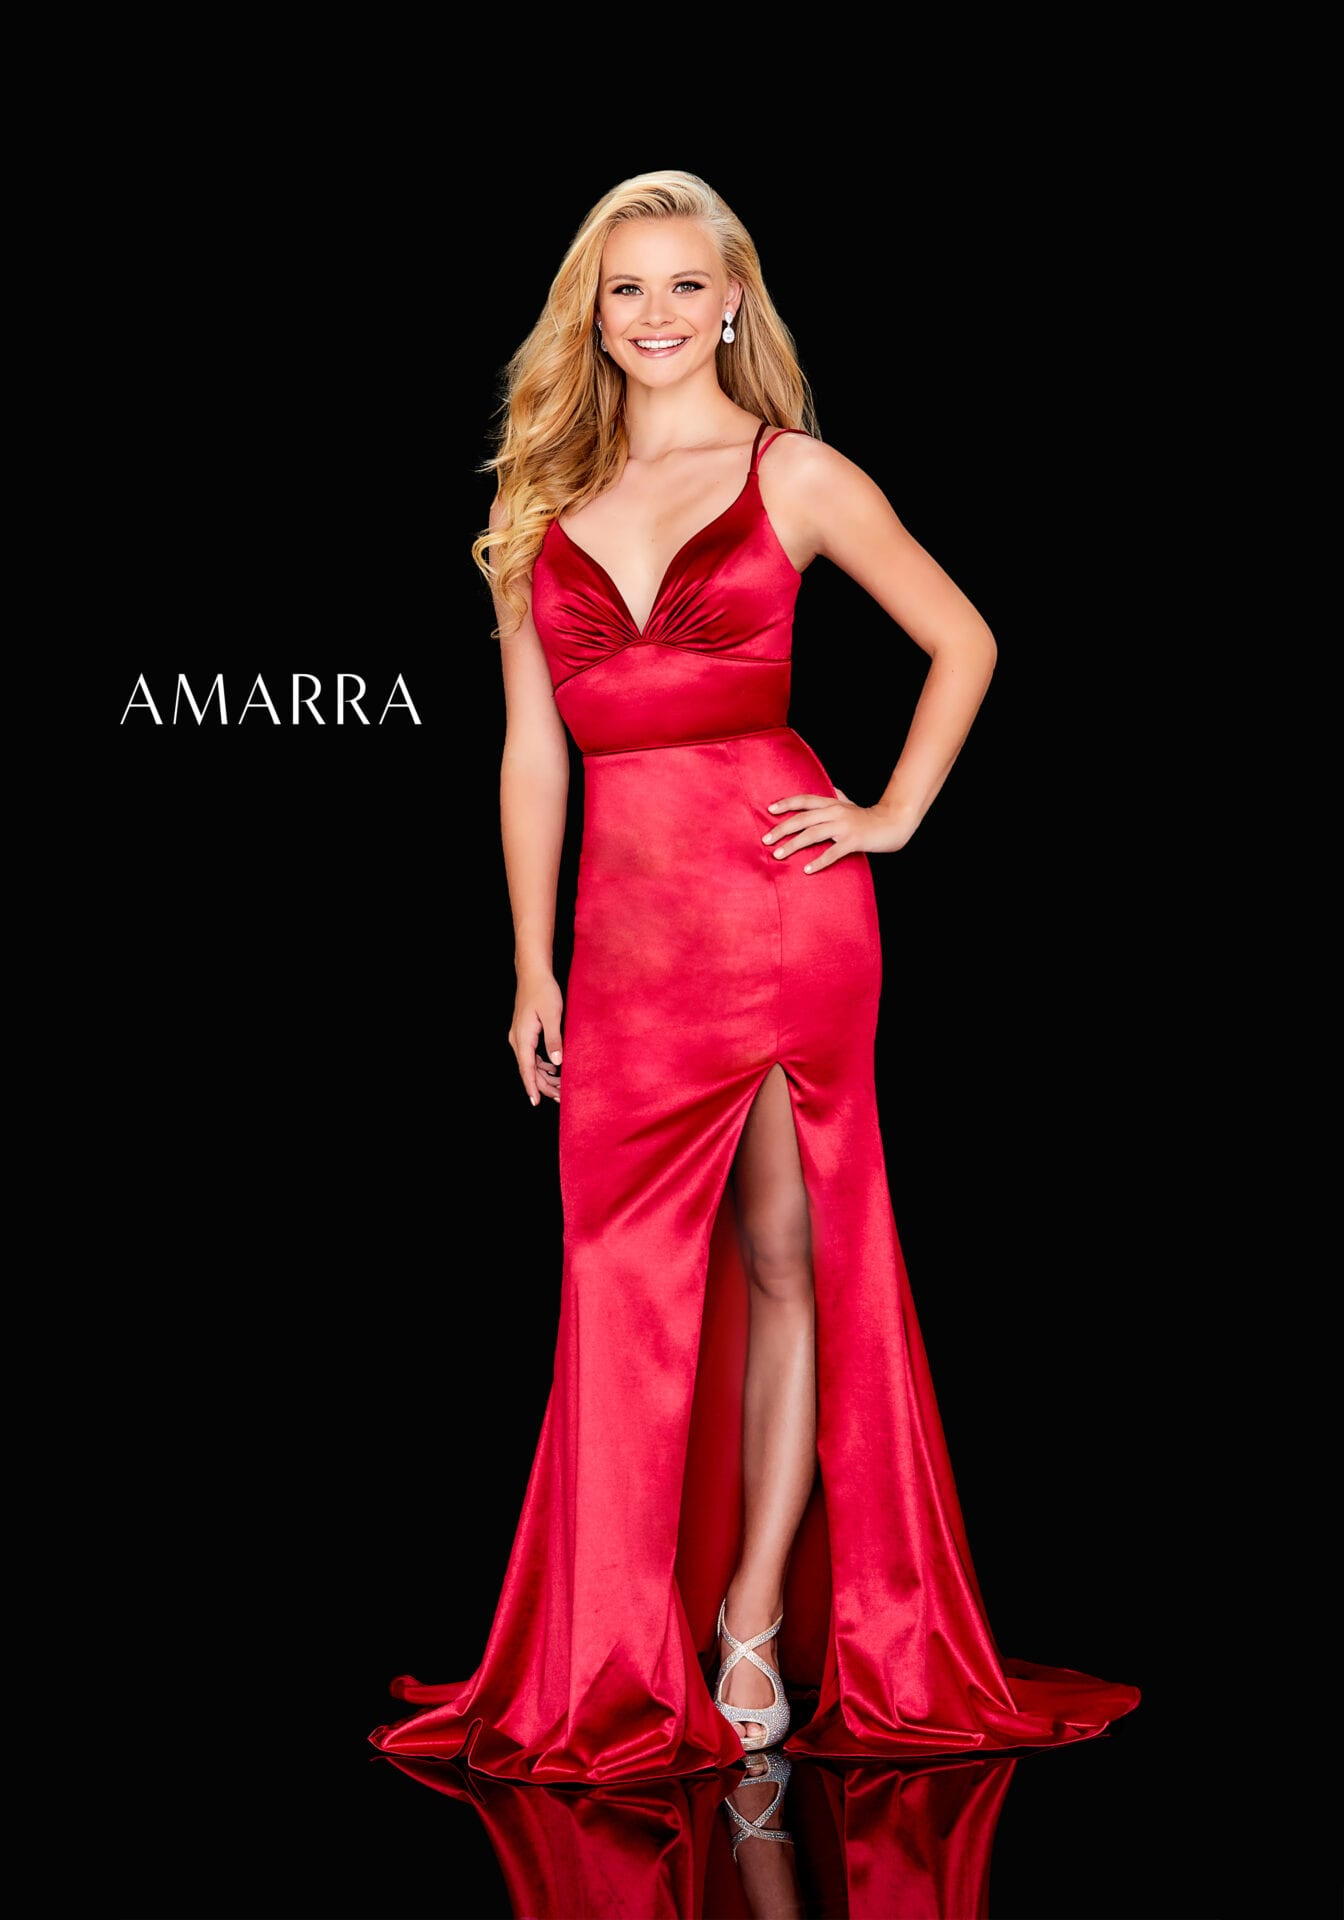 Stretch satin gown featuring ruched top, double straps, lace up back, ruched bottom, and slit skirt.